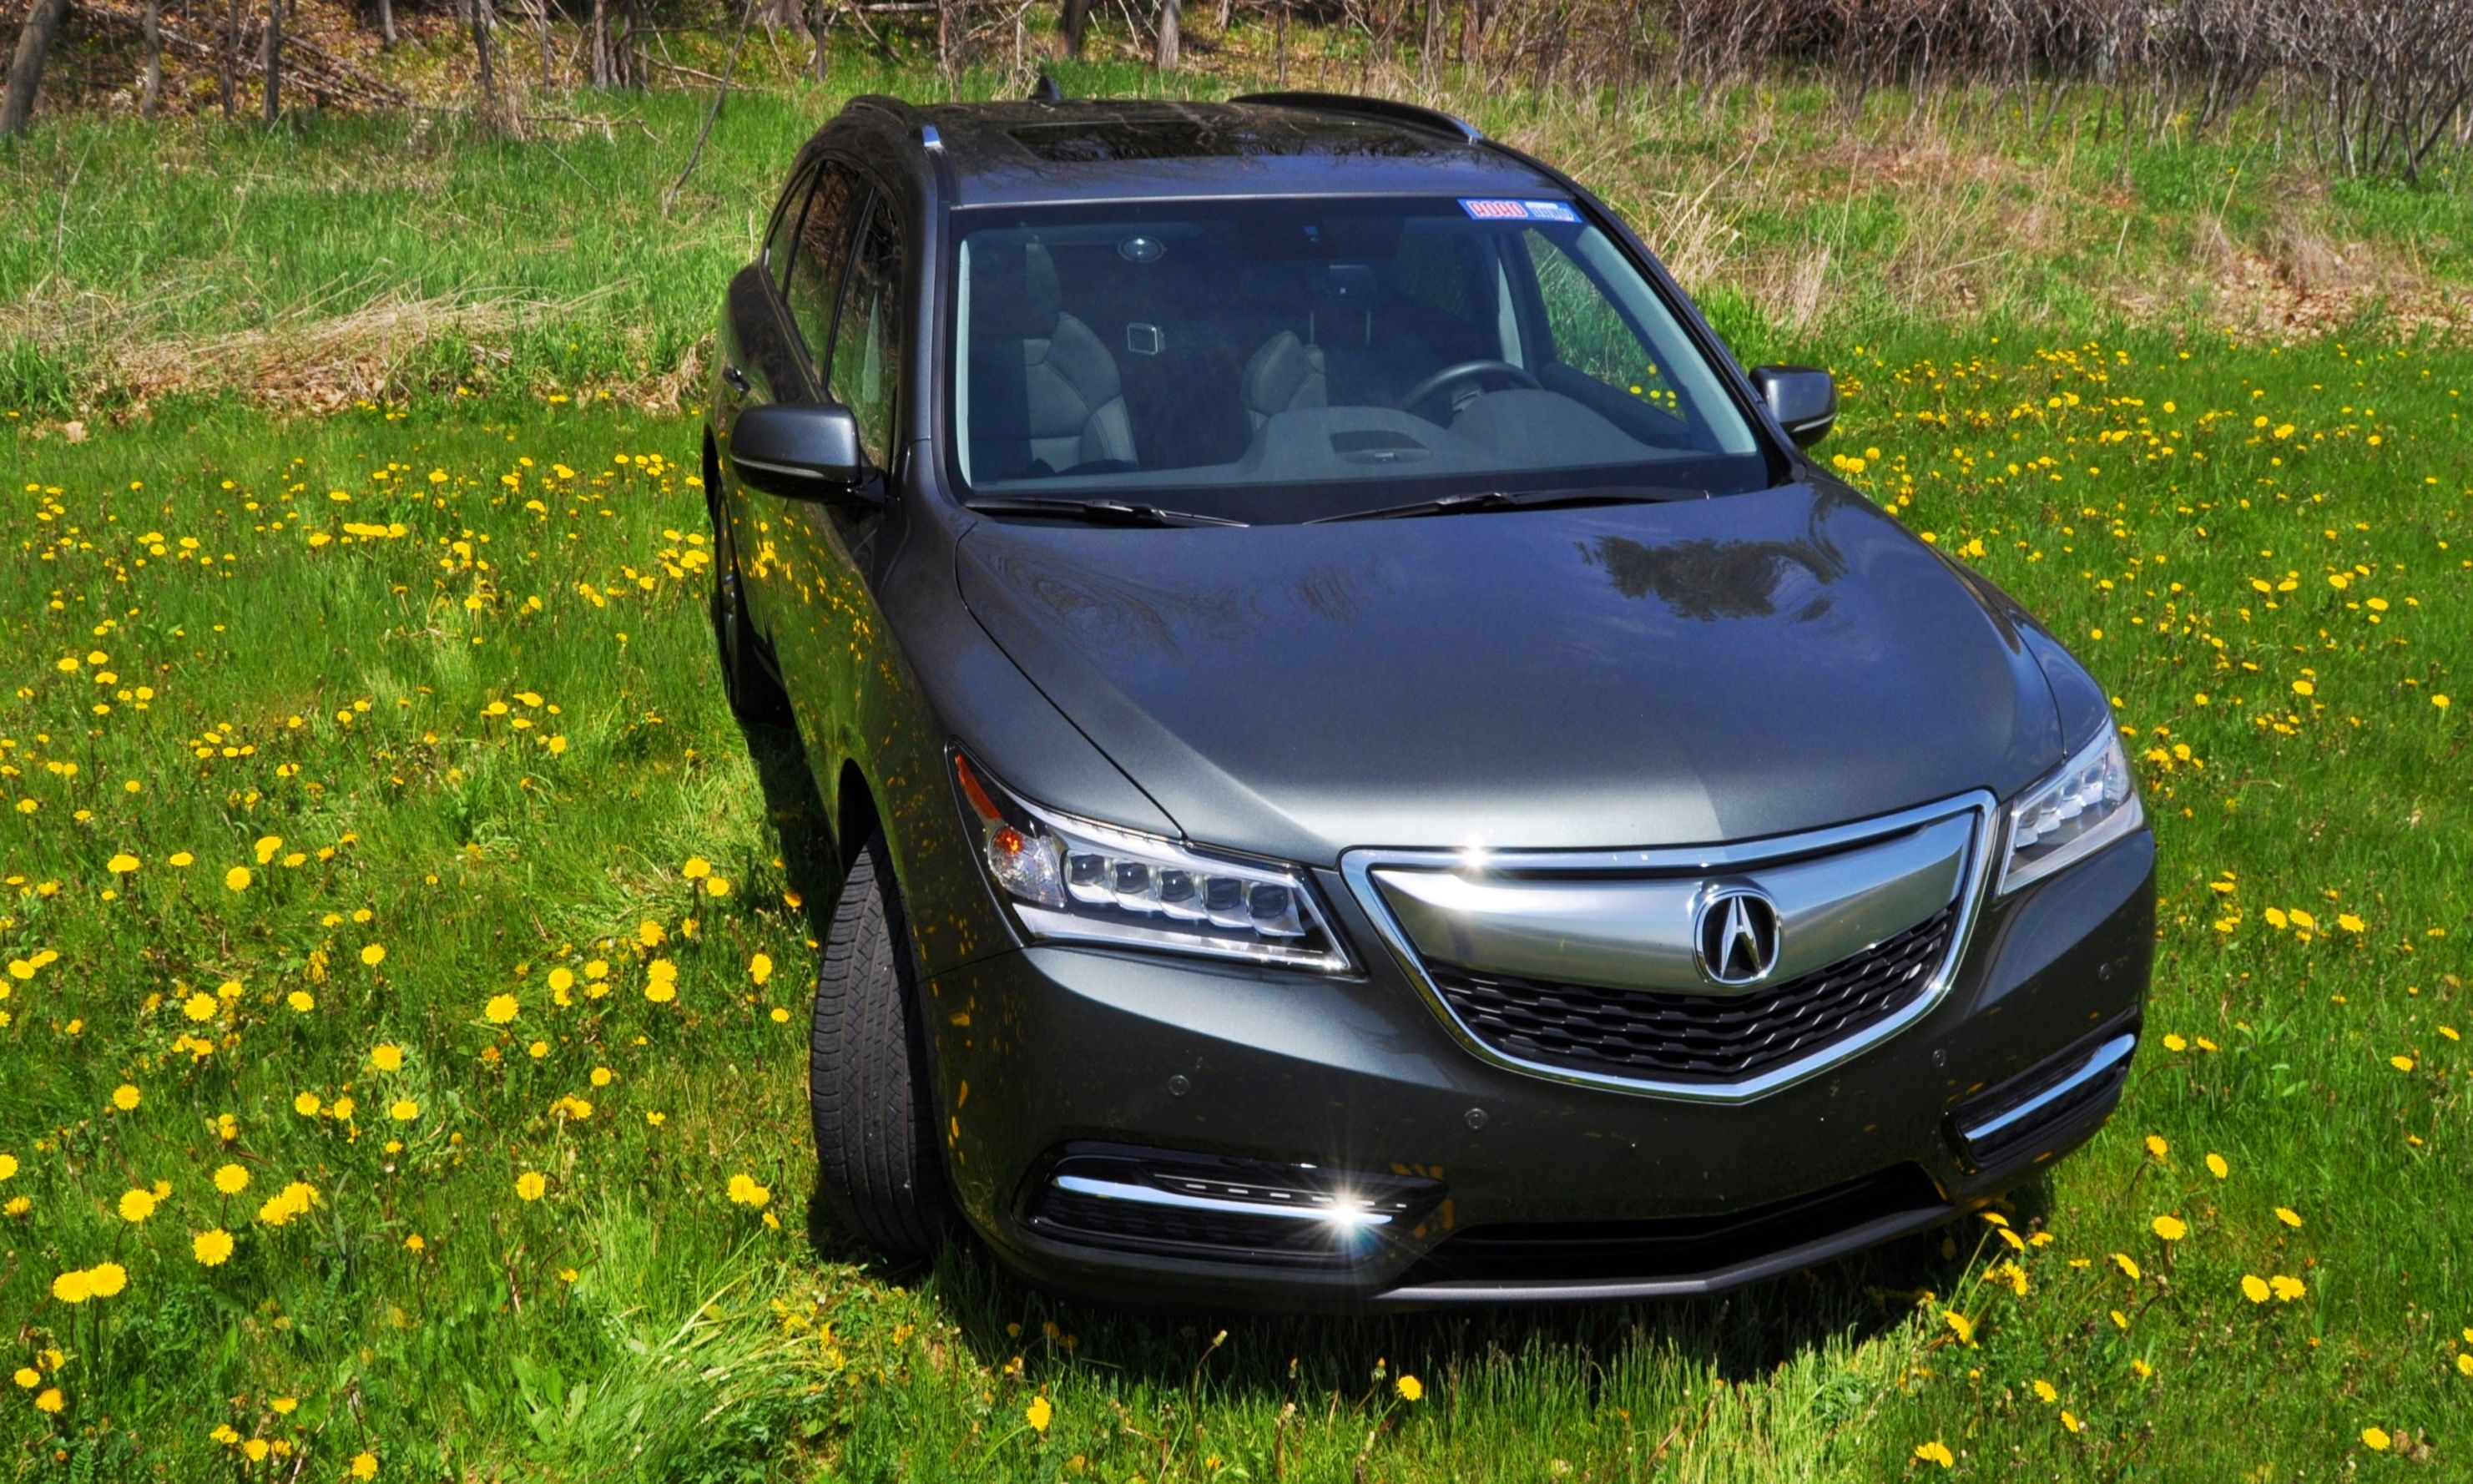 road test review 2014 acura mdx sh awd is premium and posh 7 seat